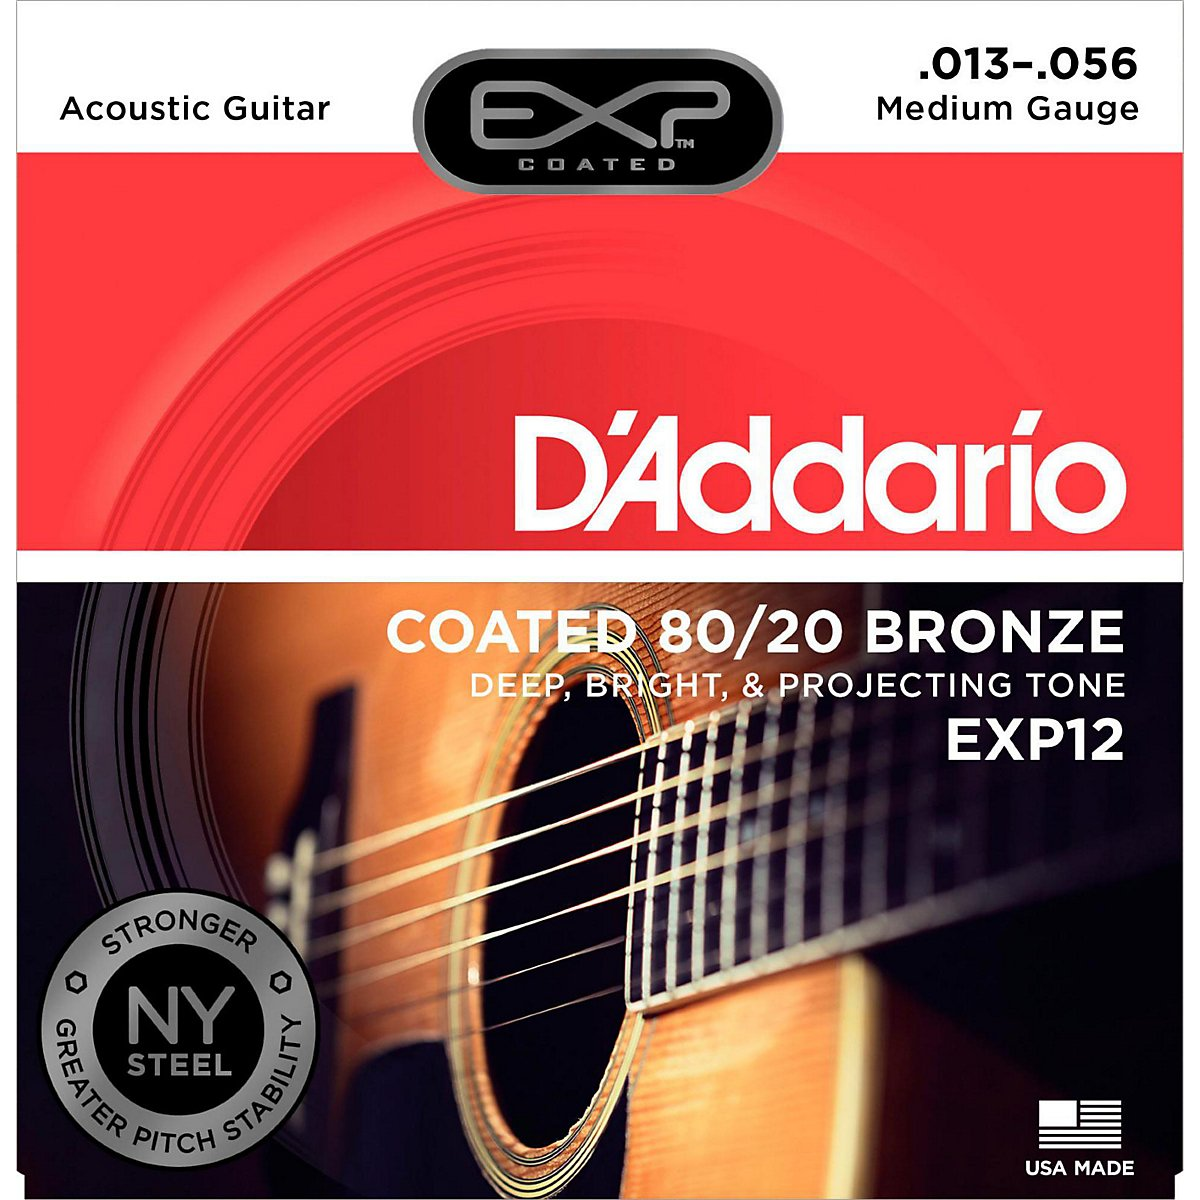 D'Addario EXP12 Coated 80/20 Bronze Acoustic Guitar Strings, Medium, 13-56 D' Addario